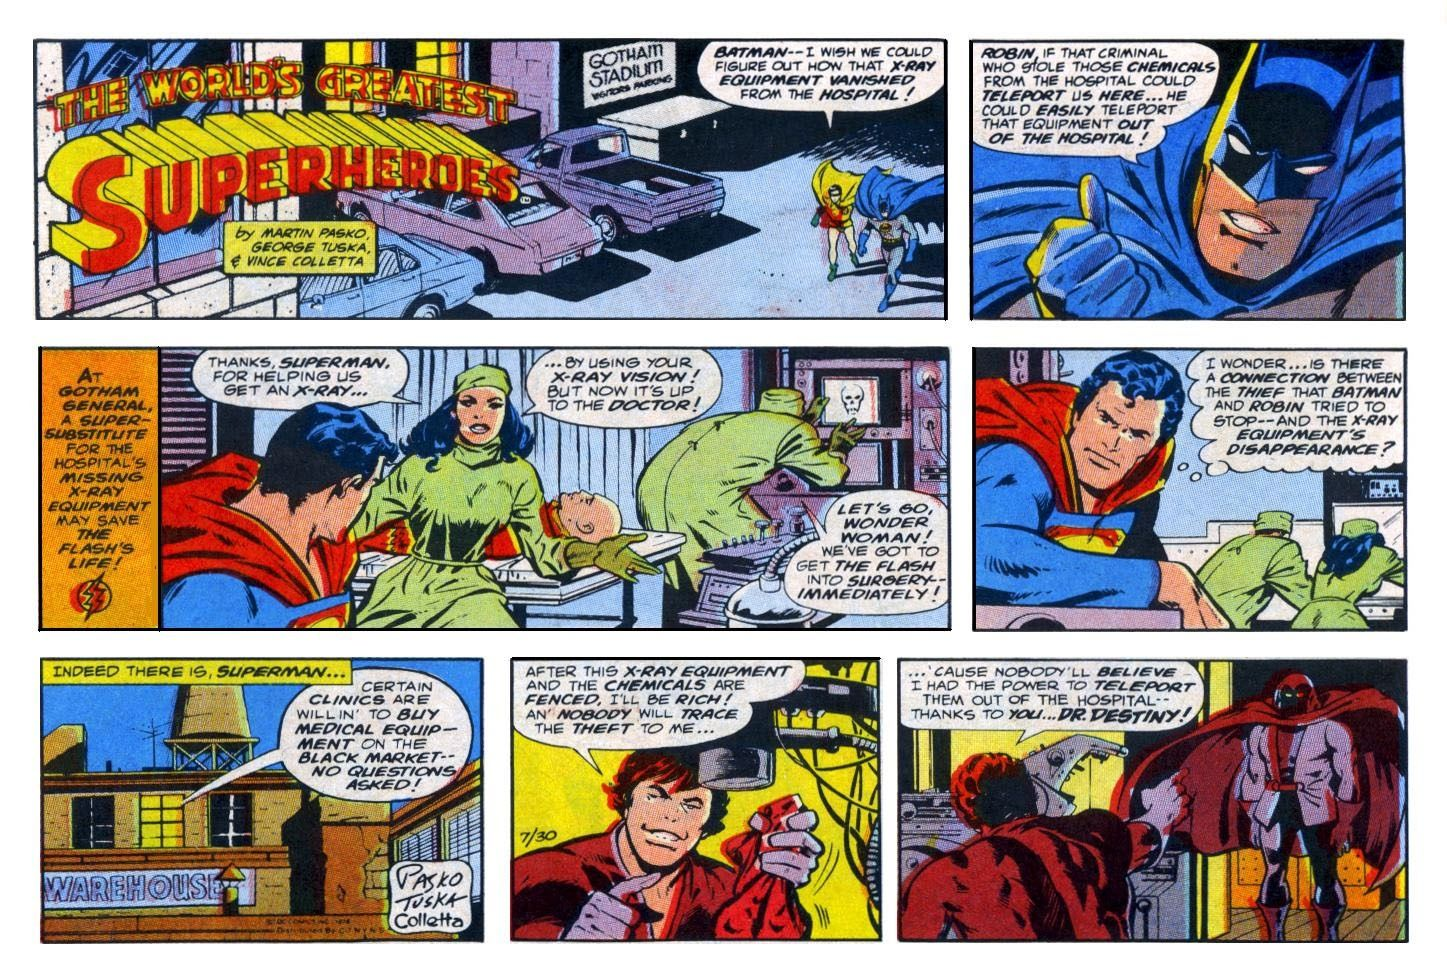 Sorry, not Comic book strip remarkable